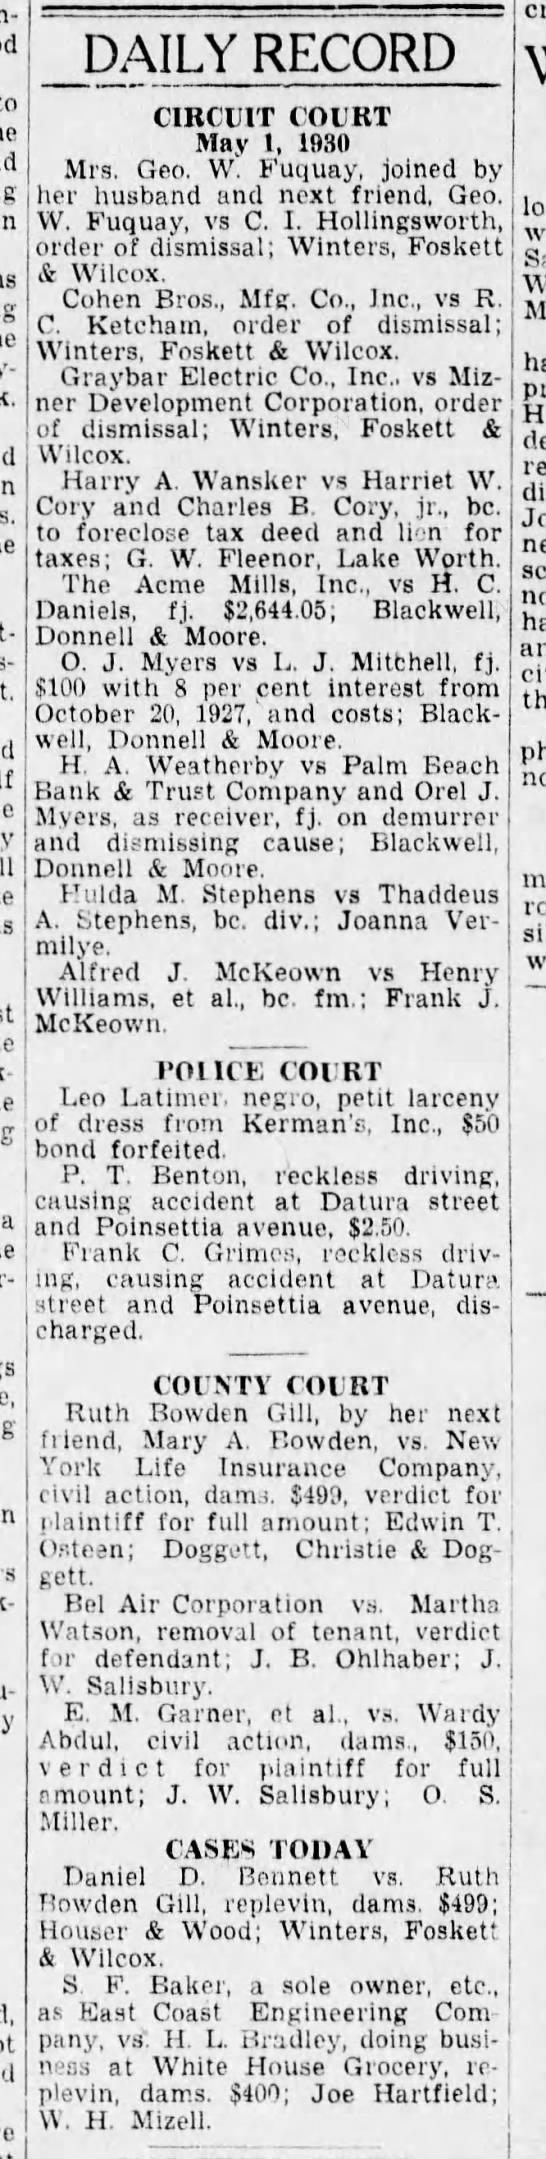 Court record, 1930 - to in crinkly-blue DAILY RECORD CIRCUIT COURT...